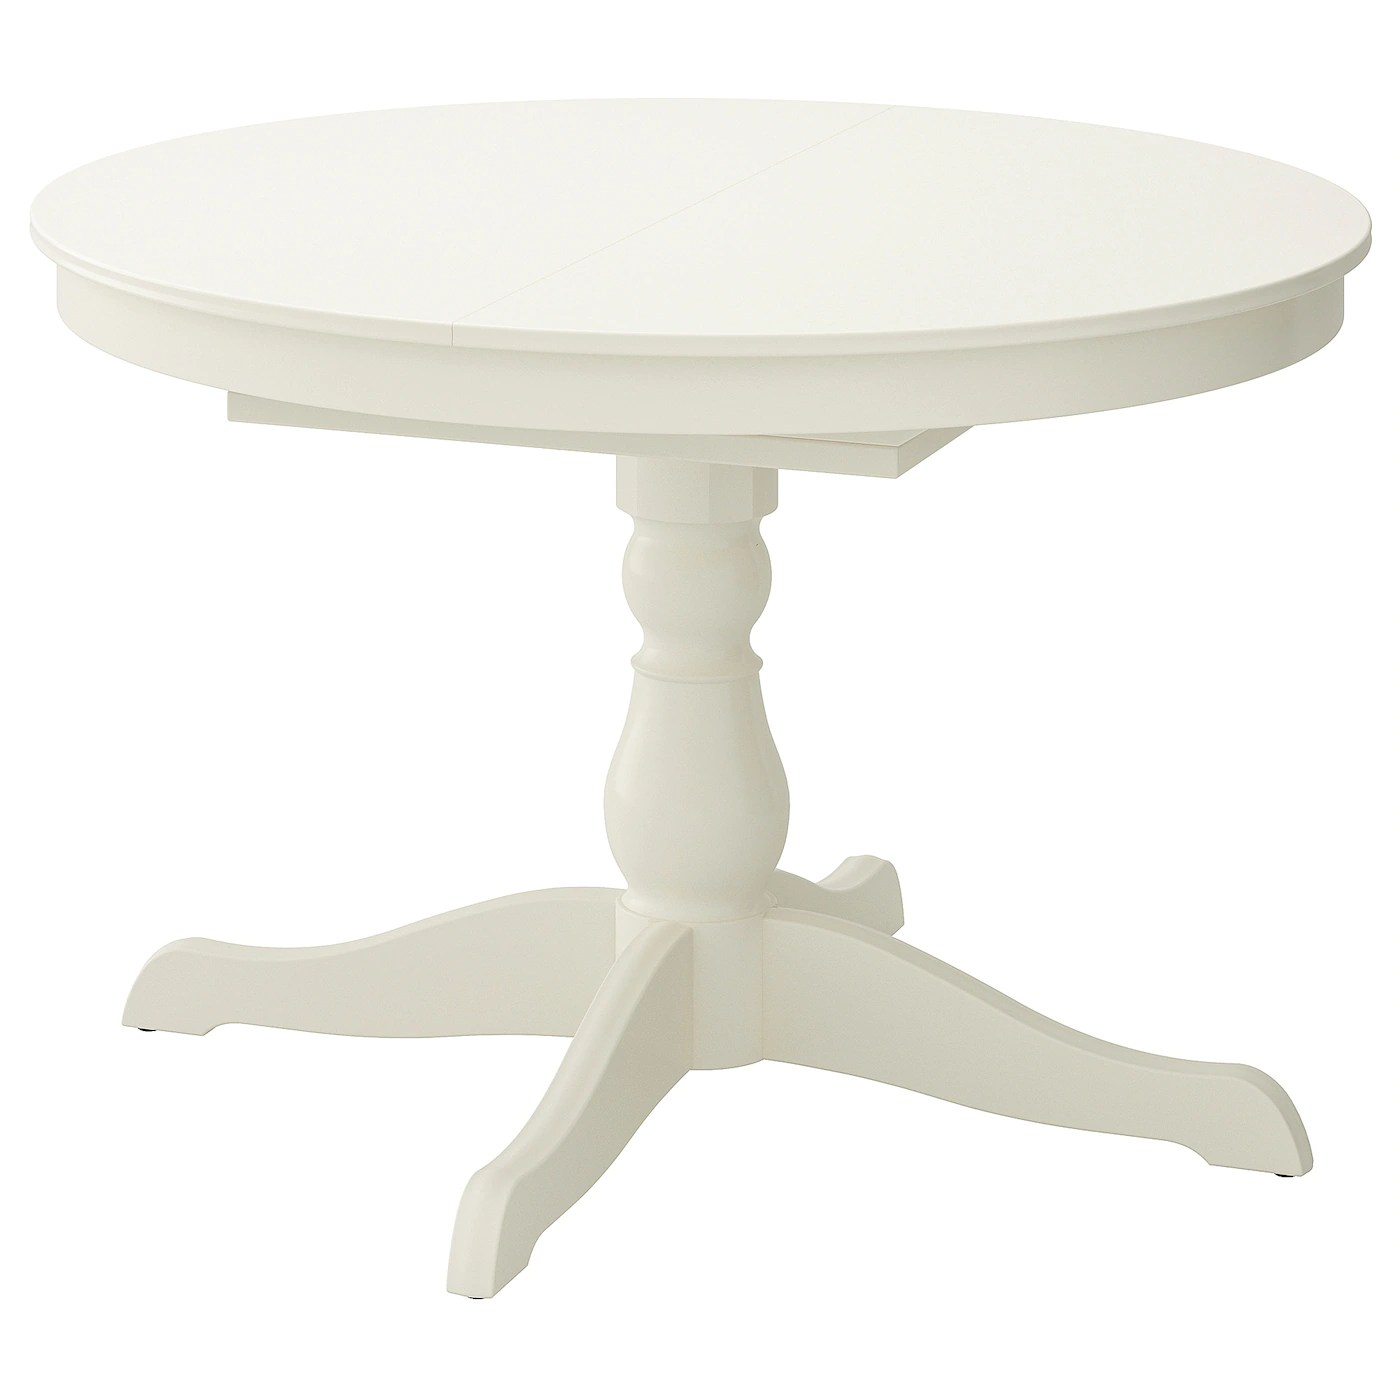 ingatorp extendable table white 110 155 cm